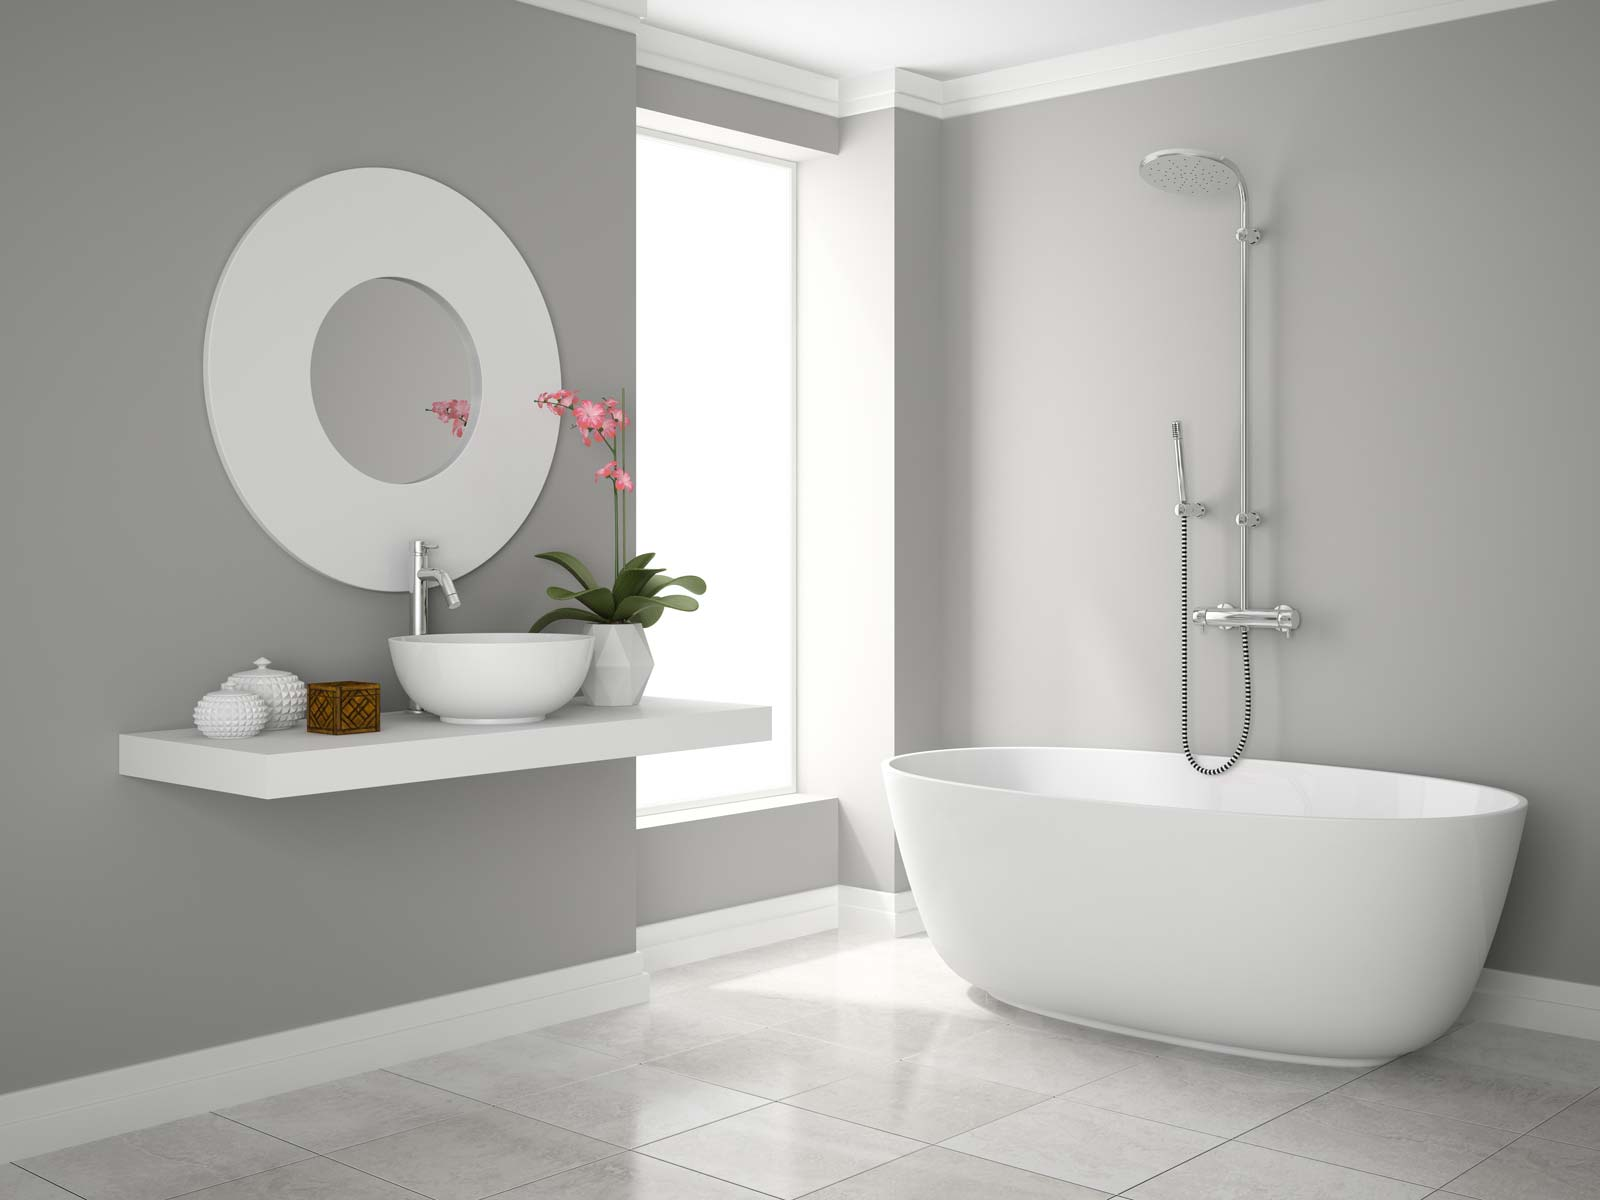 Quotatis la salle de bain high tech connectivit et for Miroir salle de bain high tech